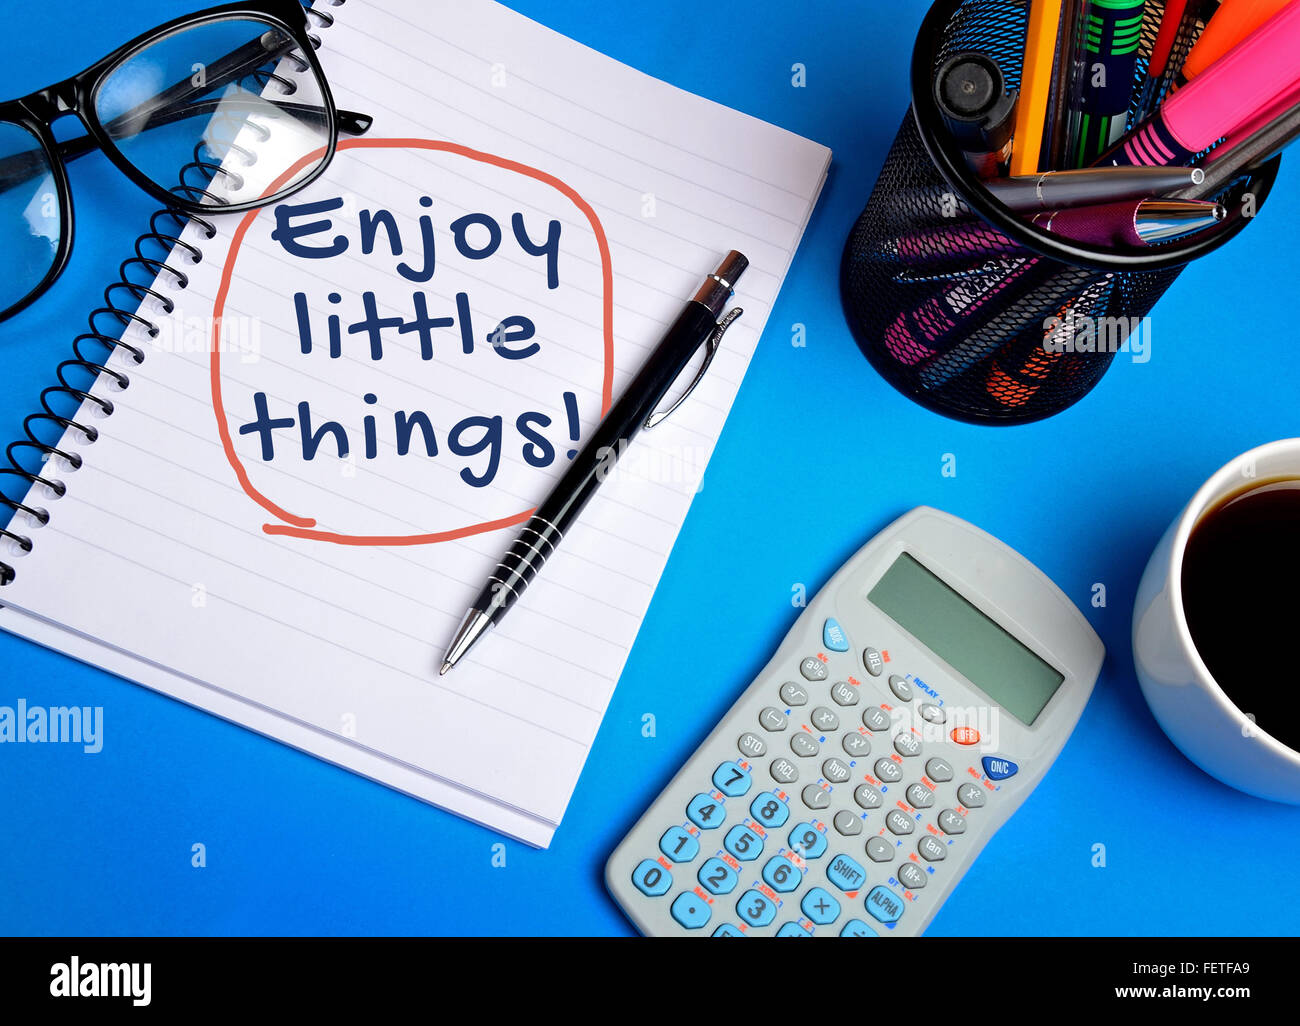 Enjoy little things word on notepad Stock Photo